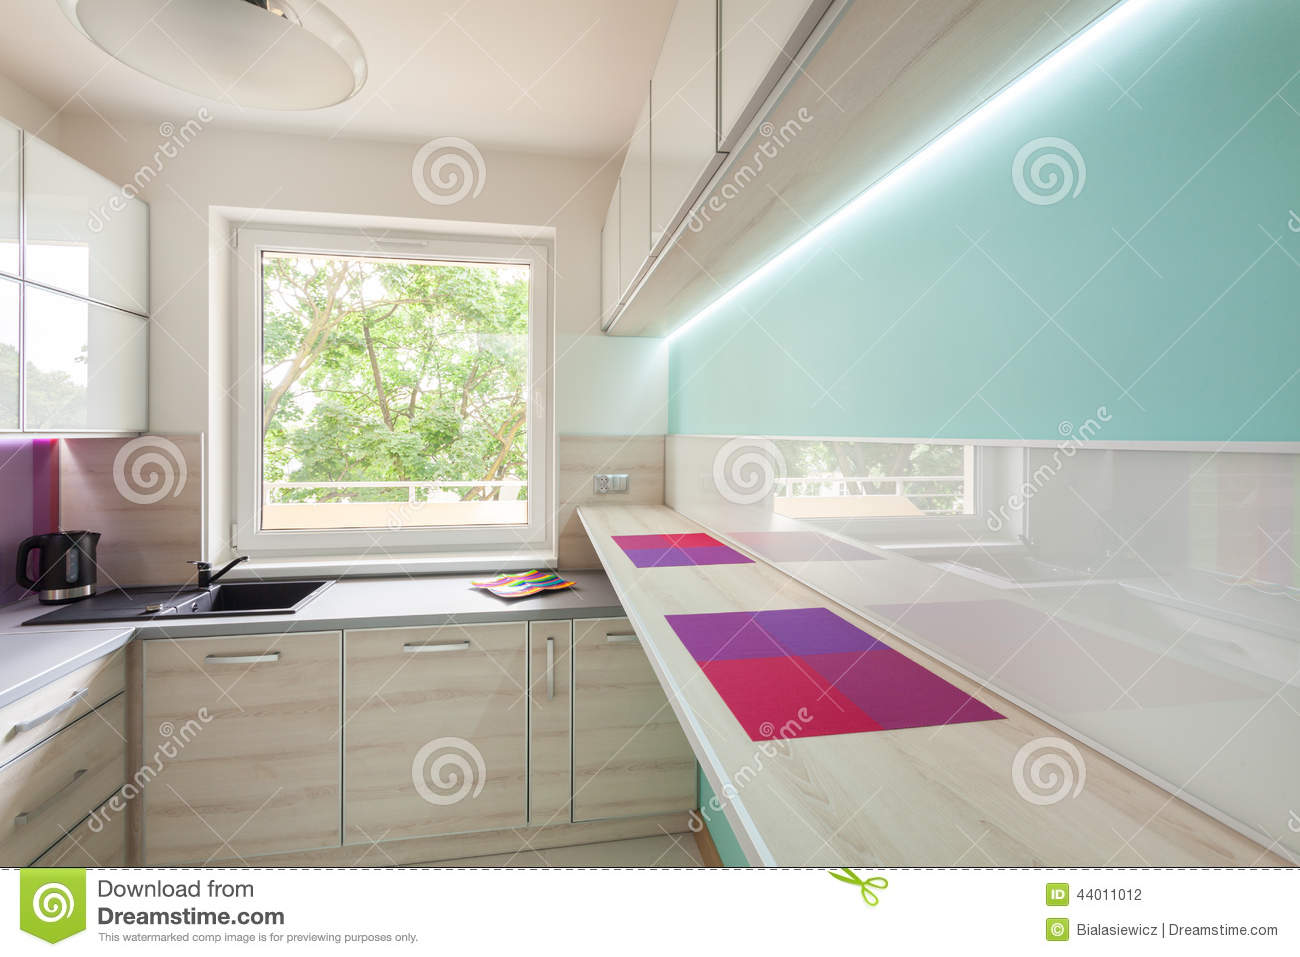 Neon Cucina Modern Kitchen With Neon Lighting Stock Photo Image Of Blue